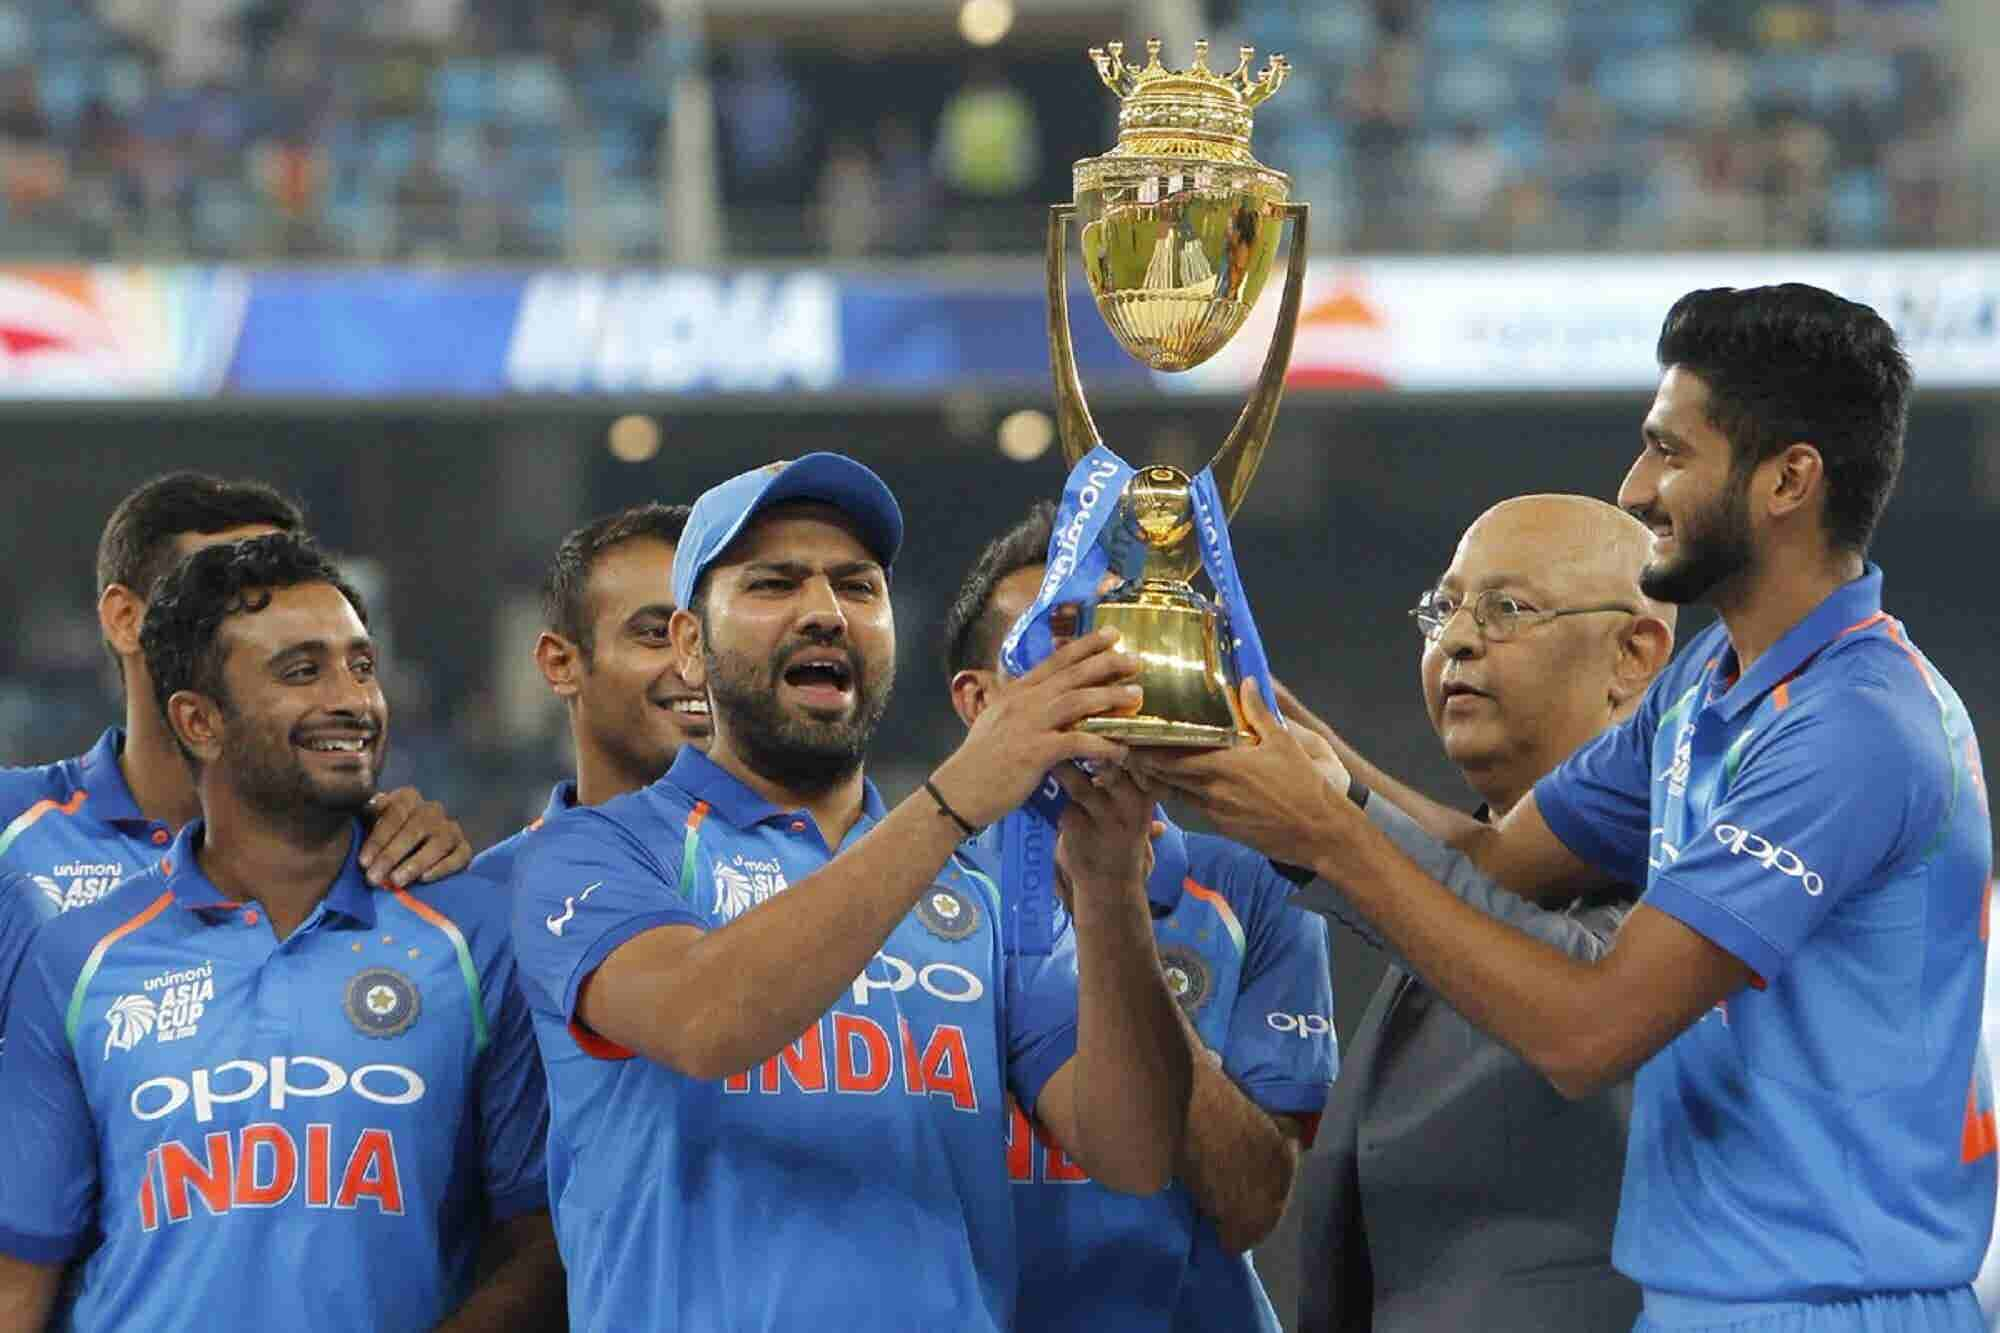 In an Exhilarating Last-over Finish, Team India Clinches Asia Cup 2018